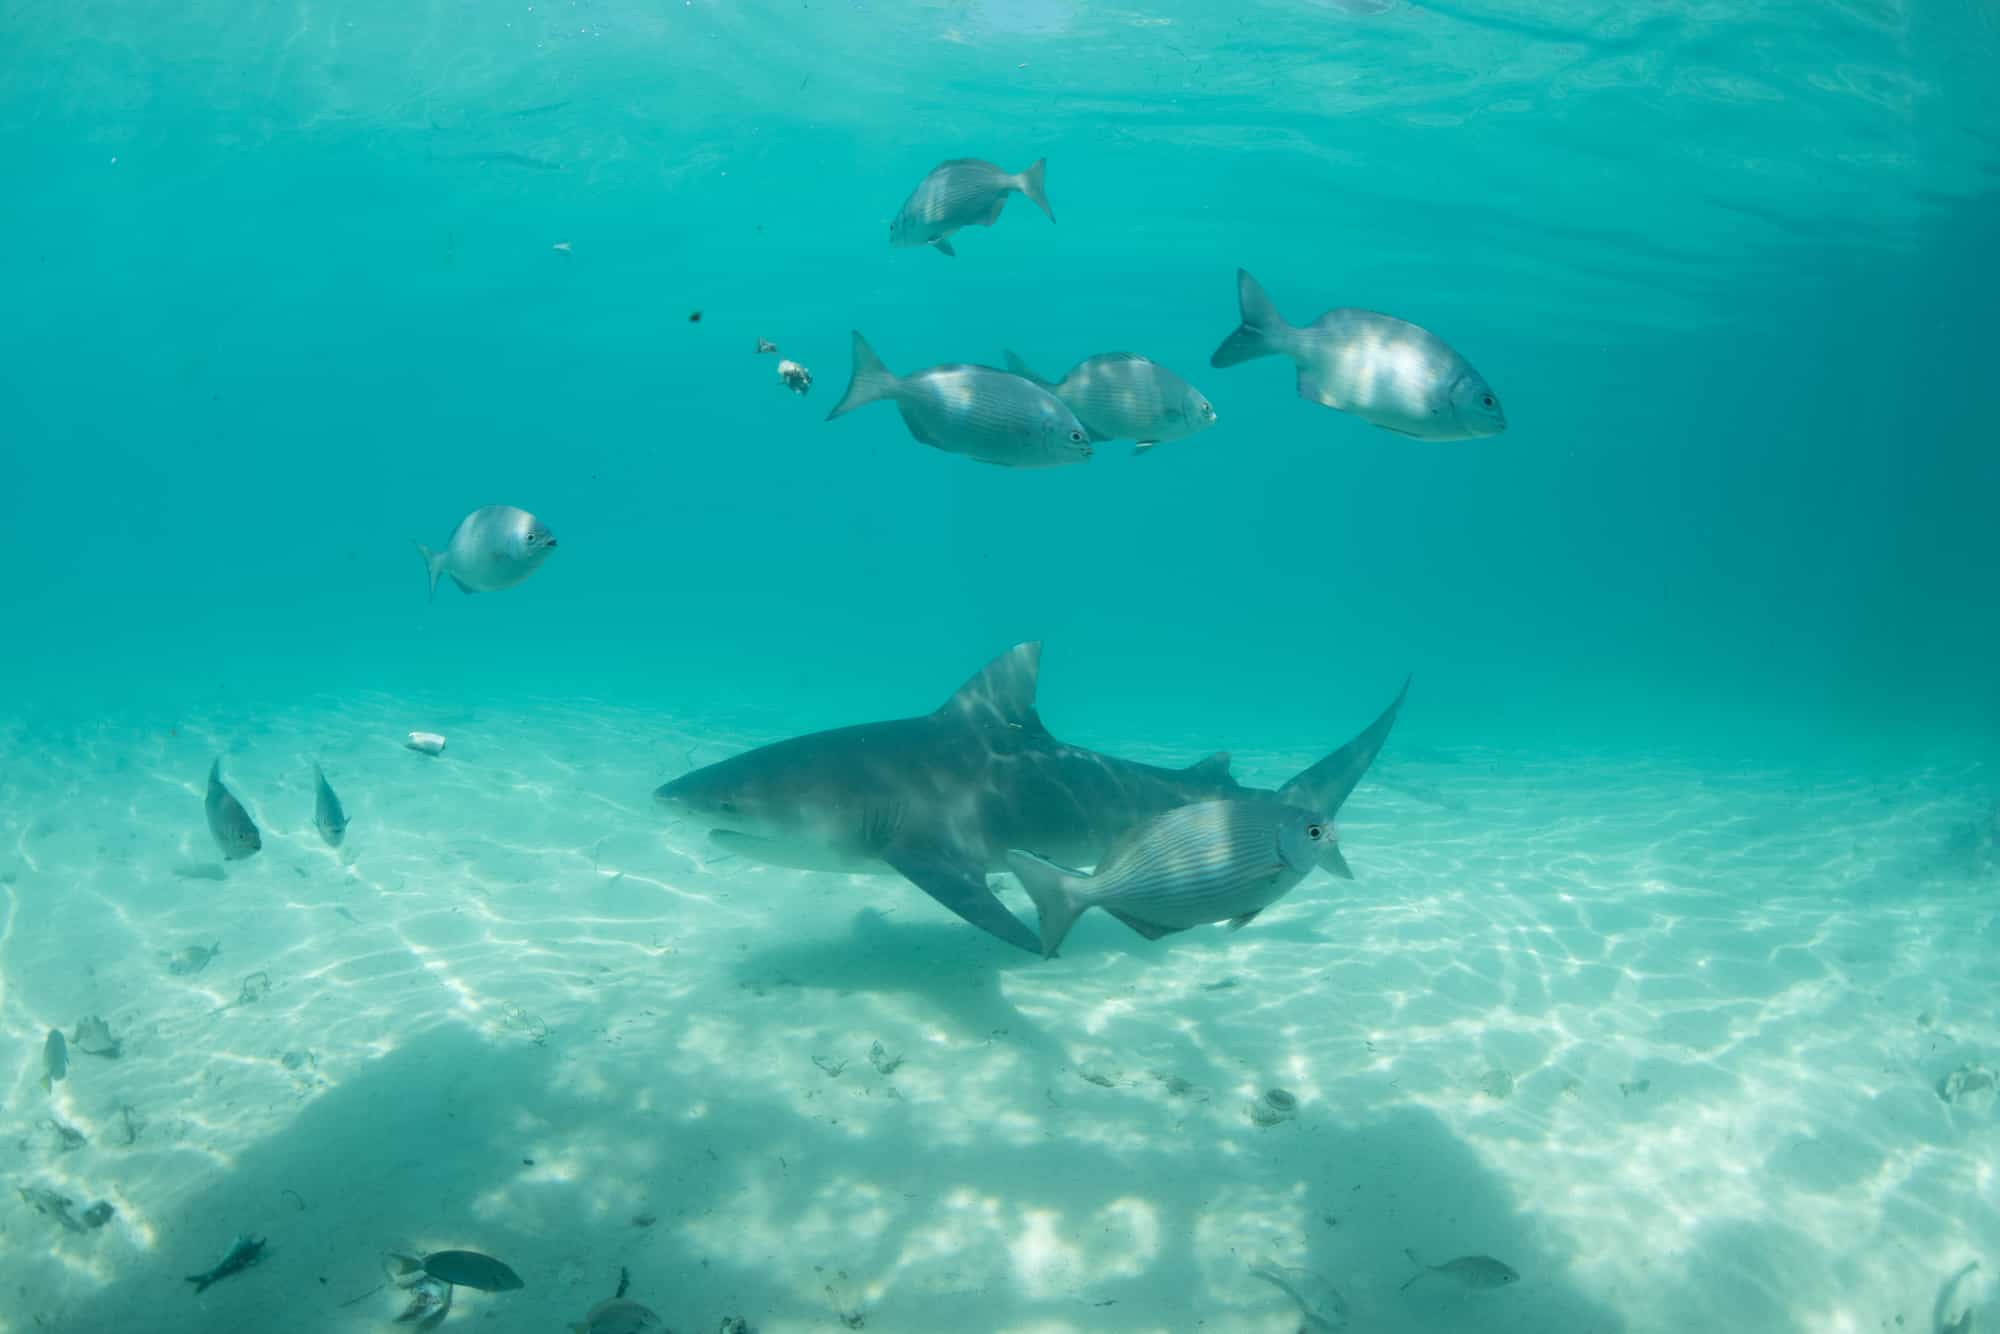 Being in the water with sharks petrifies me. But the shark lab at Bimini was the place I faced the fear and overcame it.